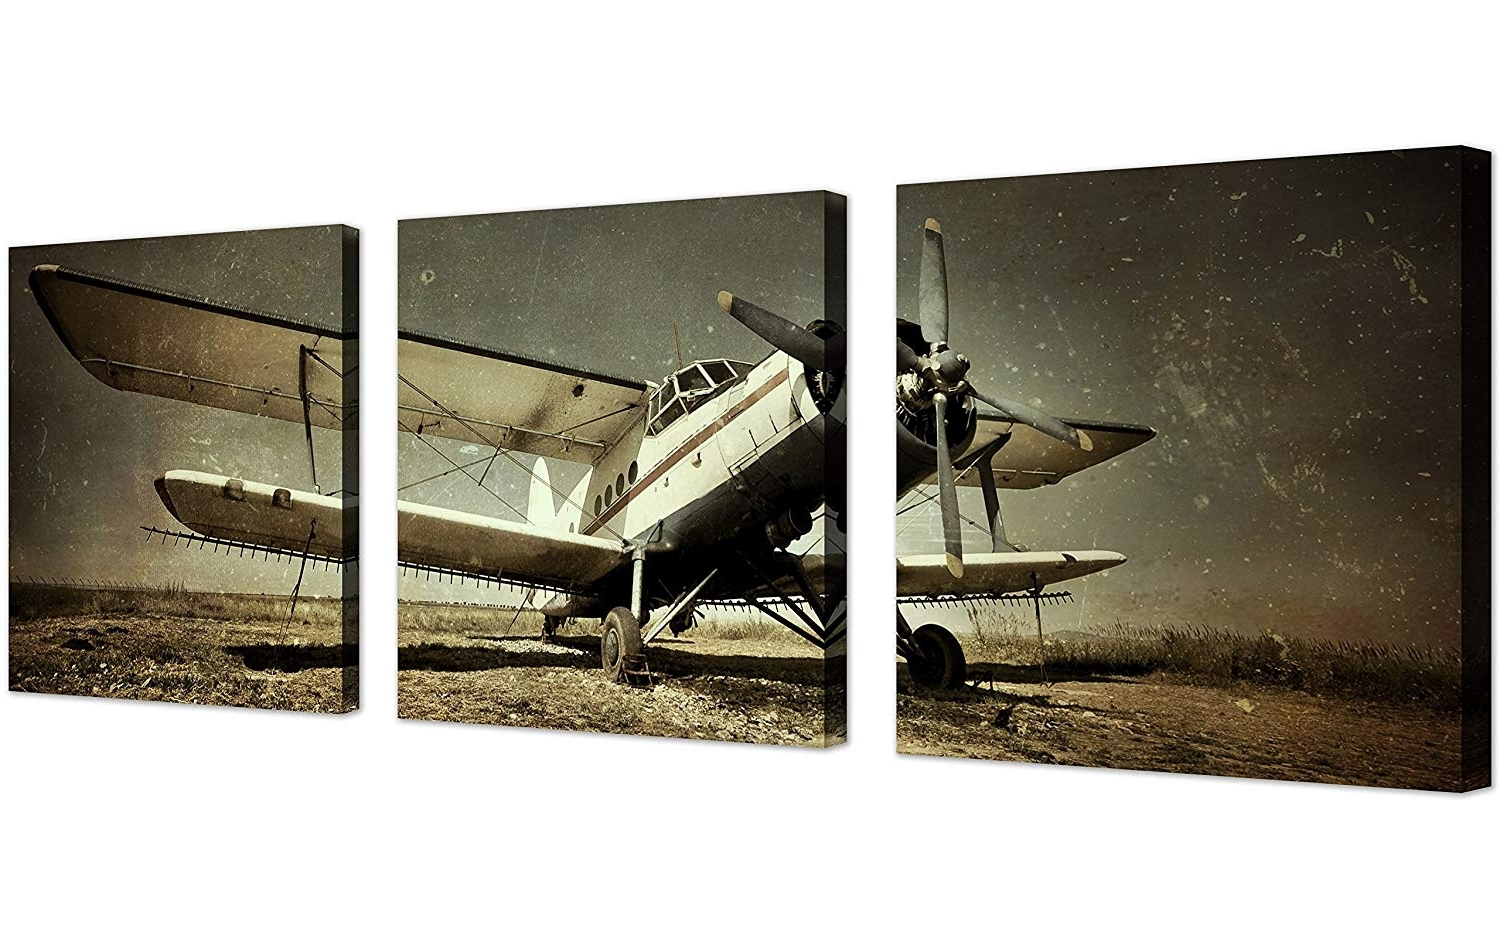 Amazon: Qicai Vintage Airplane Wall Art Giclee Canvas Vintage Throughout Well Known Airplane Wall Art (View 7 of 15)